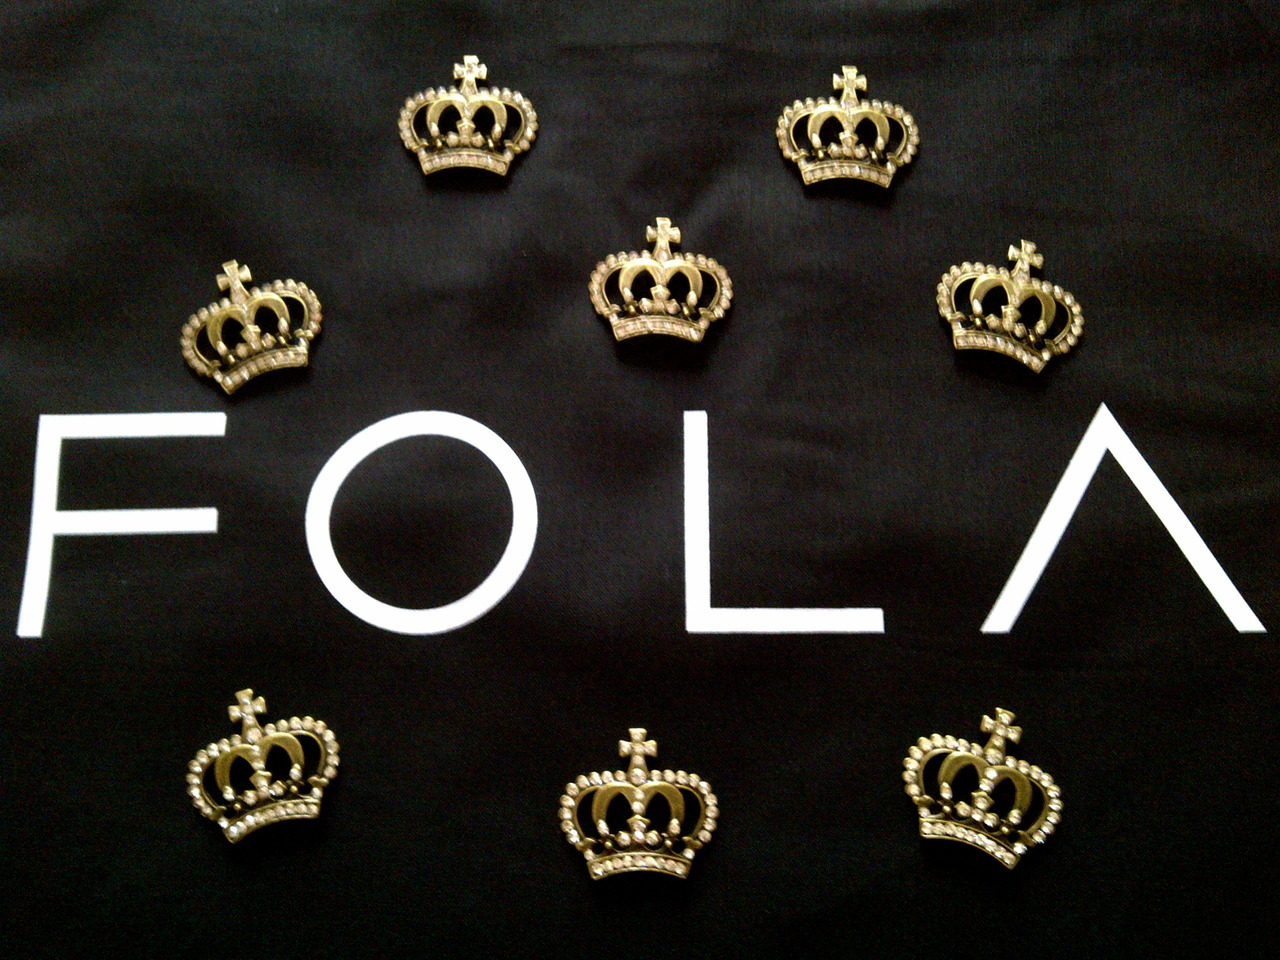 Kingdom of Fola.